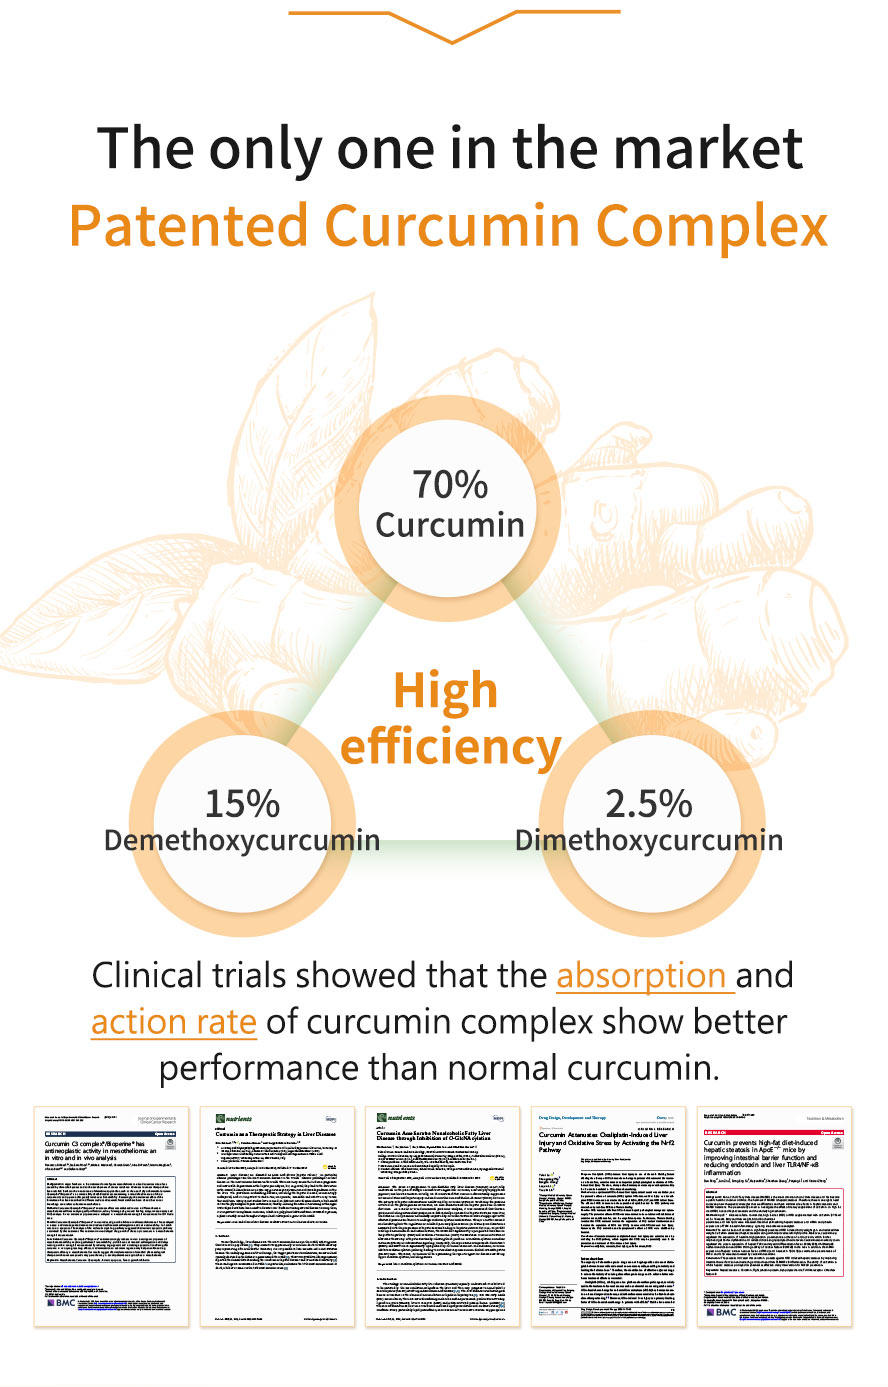 BHK's Turmeric Curcumin has the highest absorption and contains curcumin, artichoke, leafflower and black pepper.